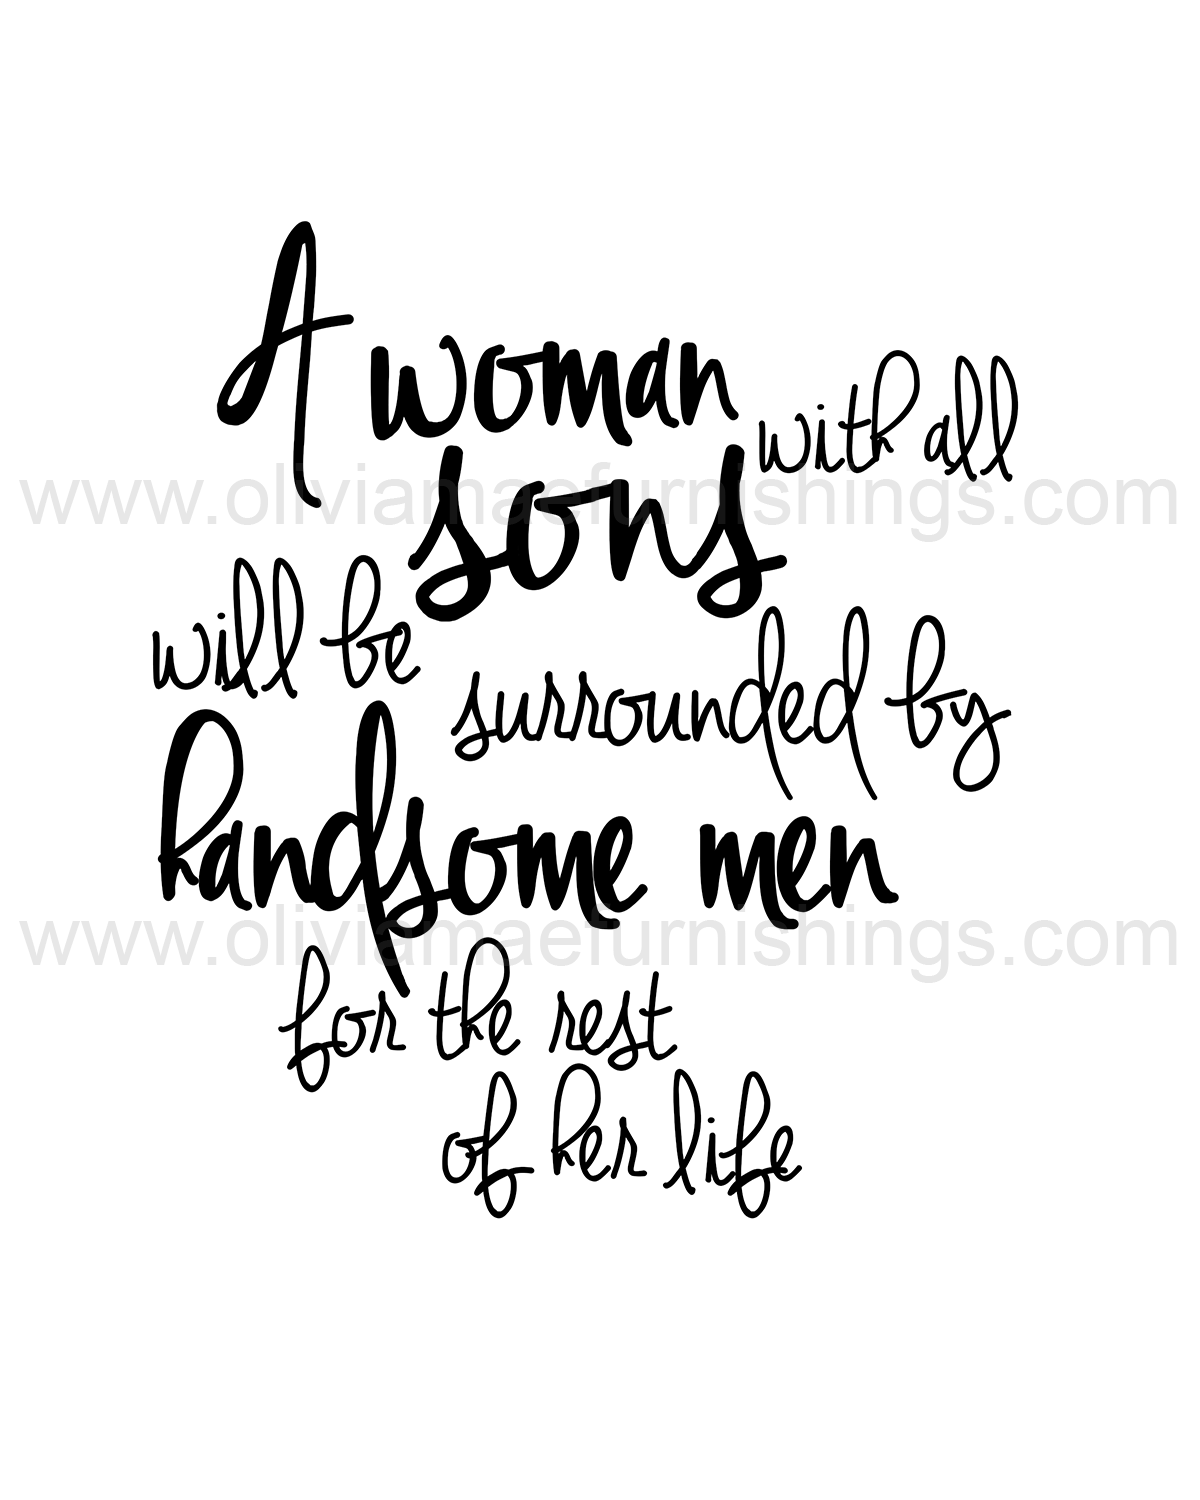 A Woman with all sons will be surrounded by handsome men for ...